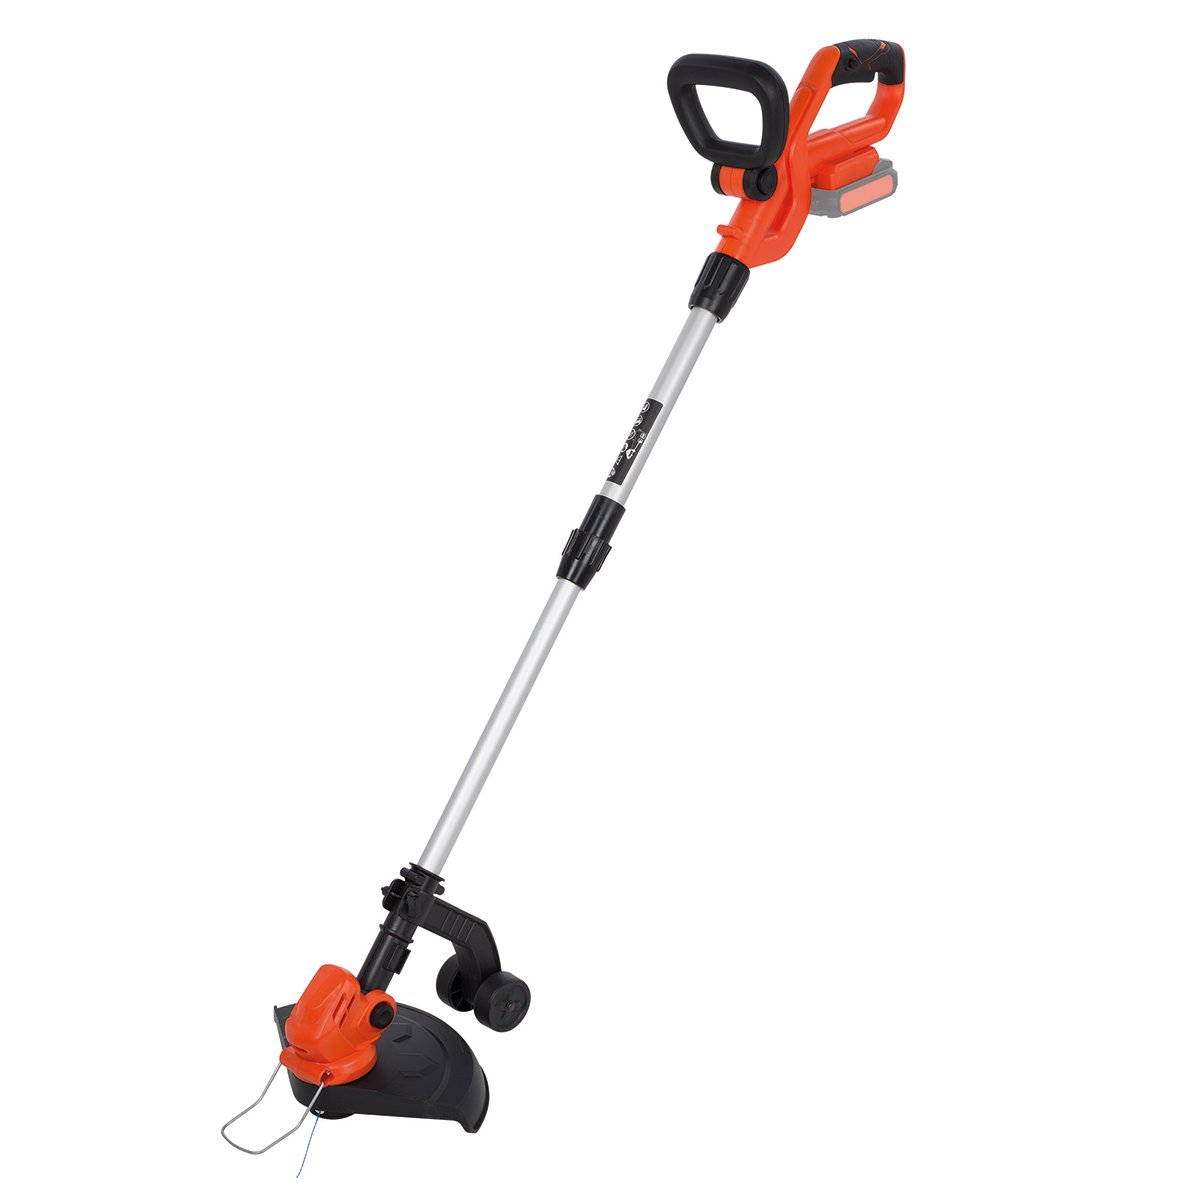 Powerplus Dual Power 20v Li-Ion Grass Trimmer/Strimmer Body Only with Telescopic Shaft, Brushless Motor, Adjustable Soft Grip Handle & Automatic Spool Feed POWDPG7540 - 3 Years Warranty